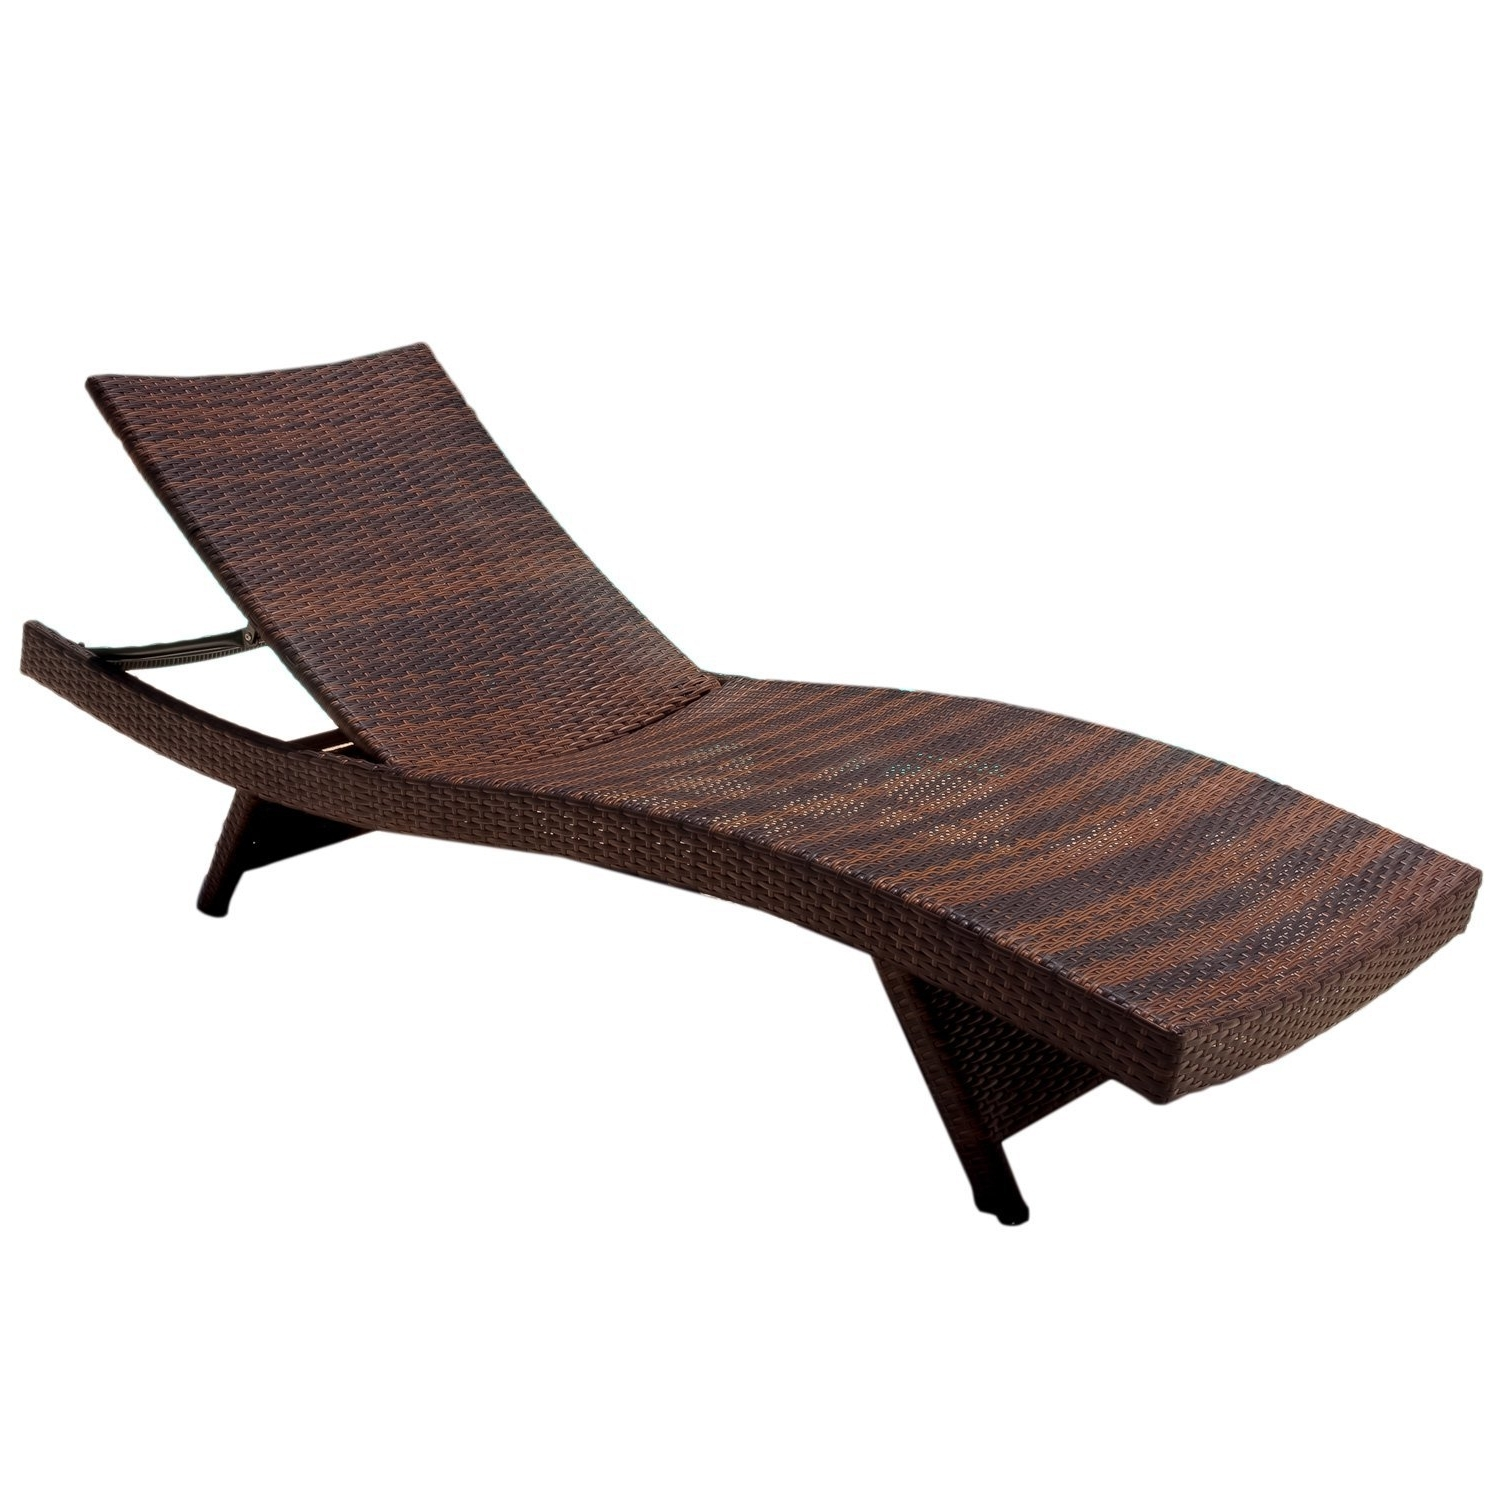 Amazon : Best Selling Outdoor Adjustable Wicker Lounge, Brown With Trendy Contemporary Outdoor Chaise Lounge Chairs (View 1 of 15)